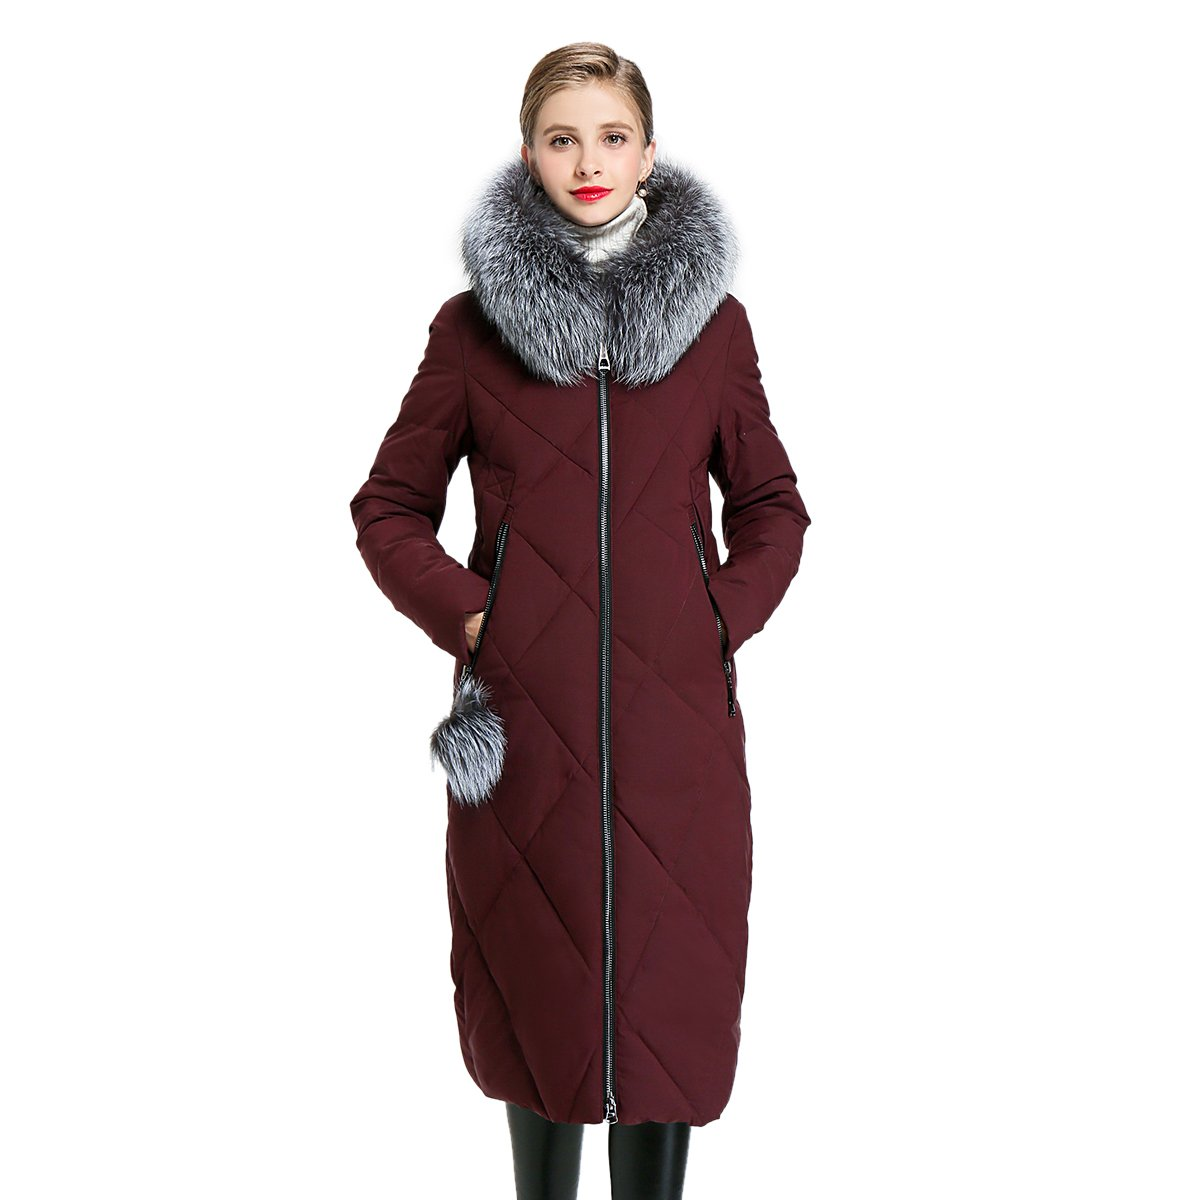 Womens Winter Hooded Thick Coat Parka Style Jackets Fashion Fur Collar Coat Y170012